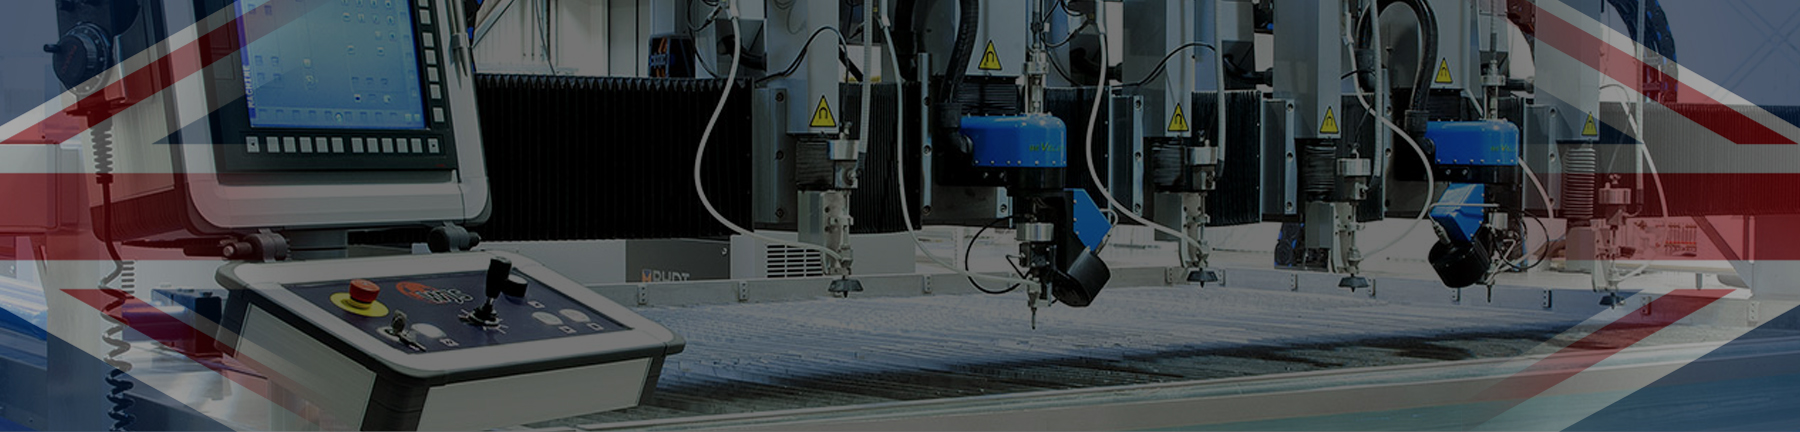 WATERJET SWEDEN CUTTING MACHINES